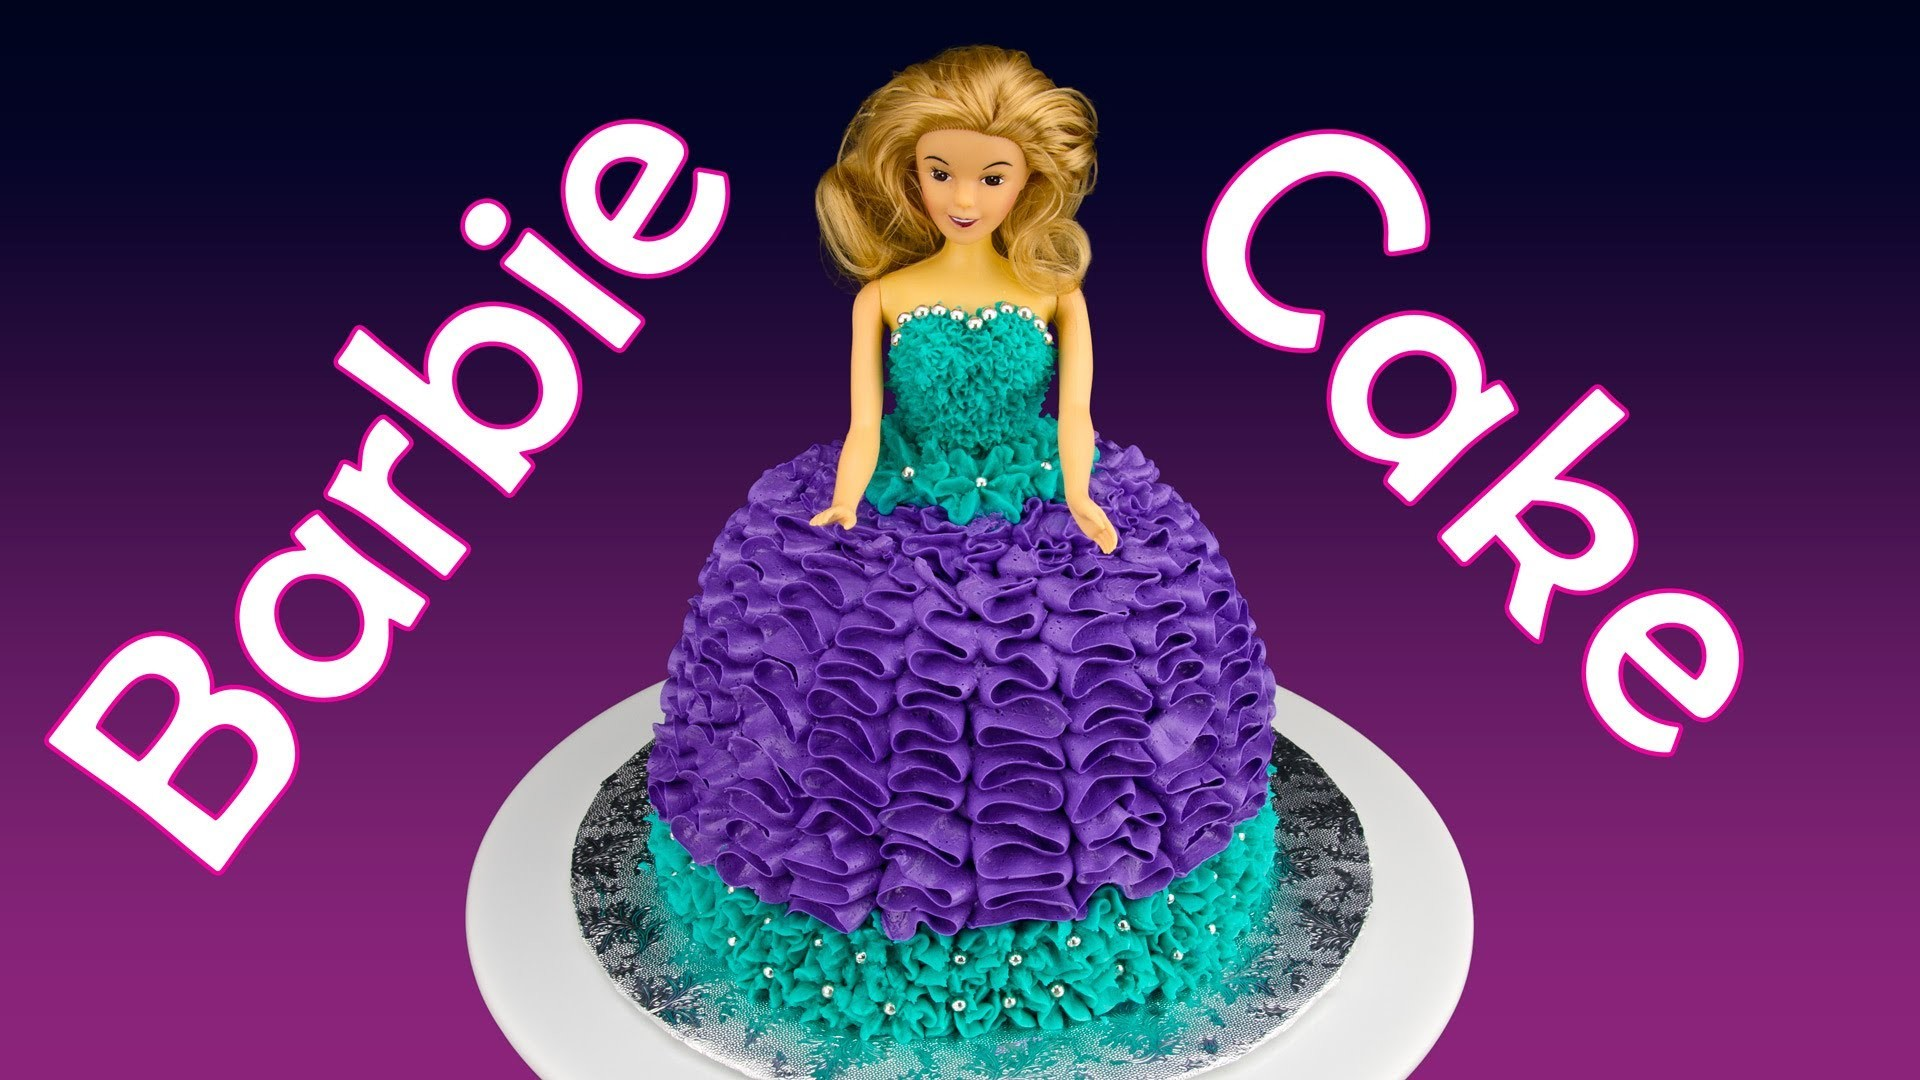 Barbie Cake. Princess Cake: How to Make a Barbie Cake by Cookies Cupcakes and Cardio